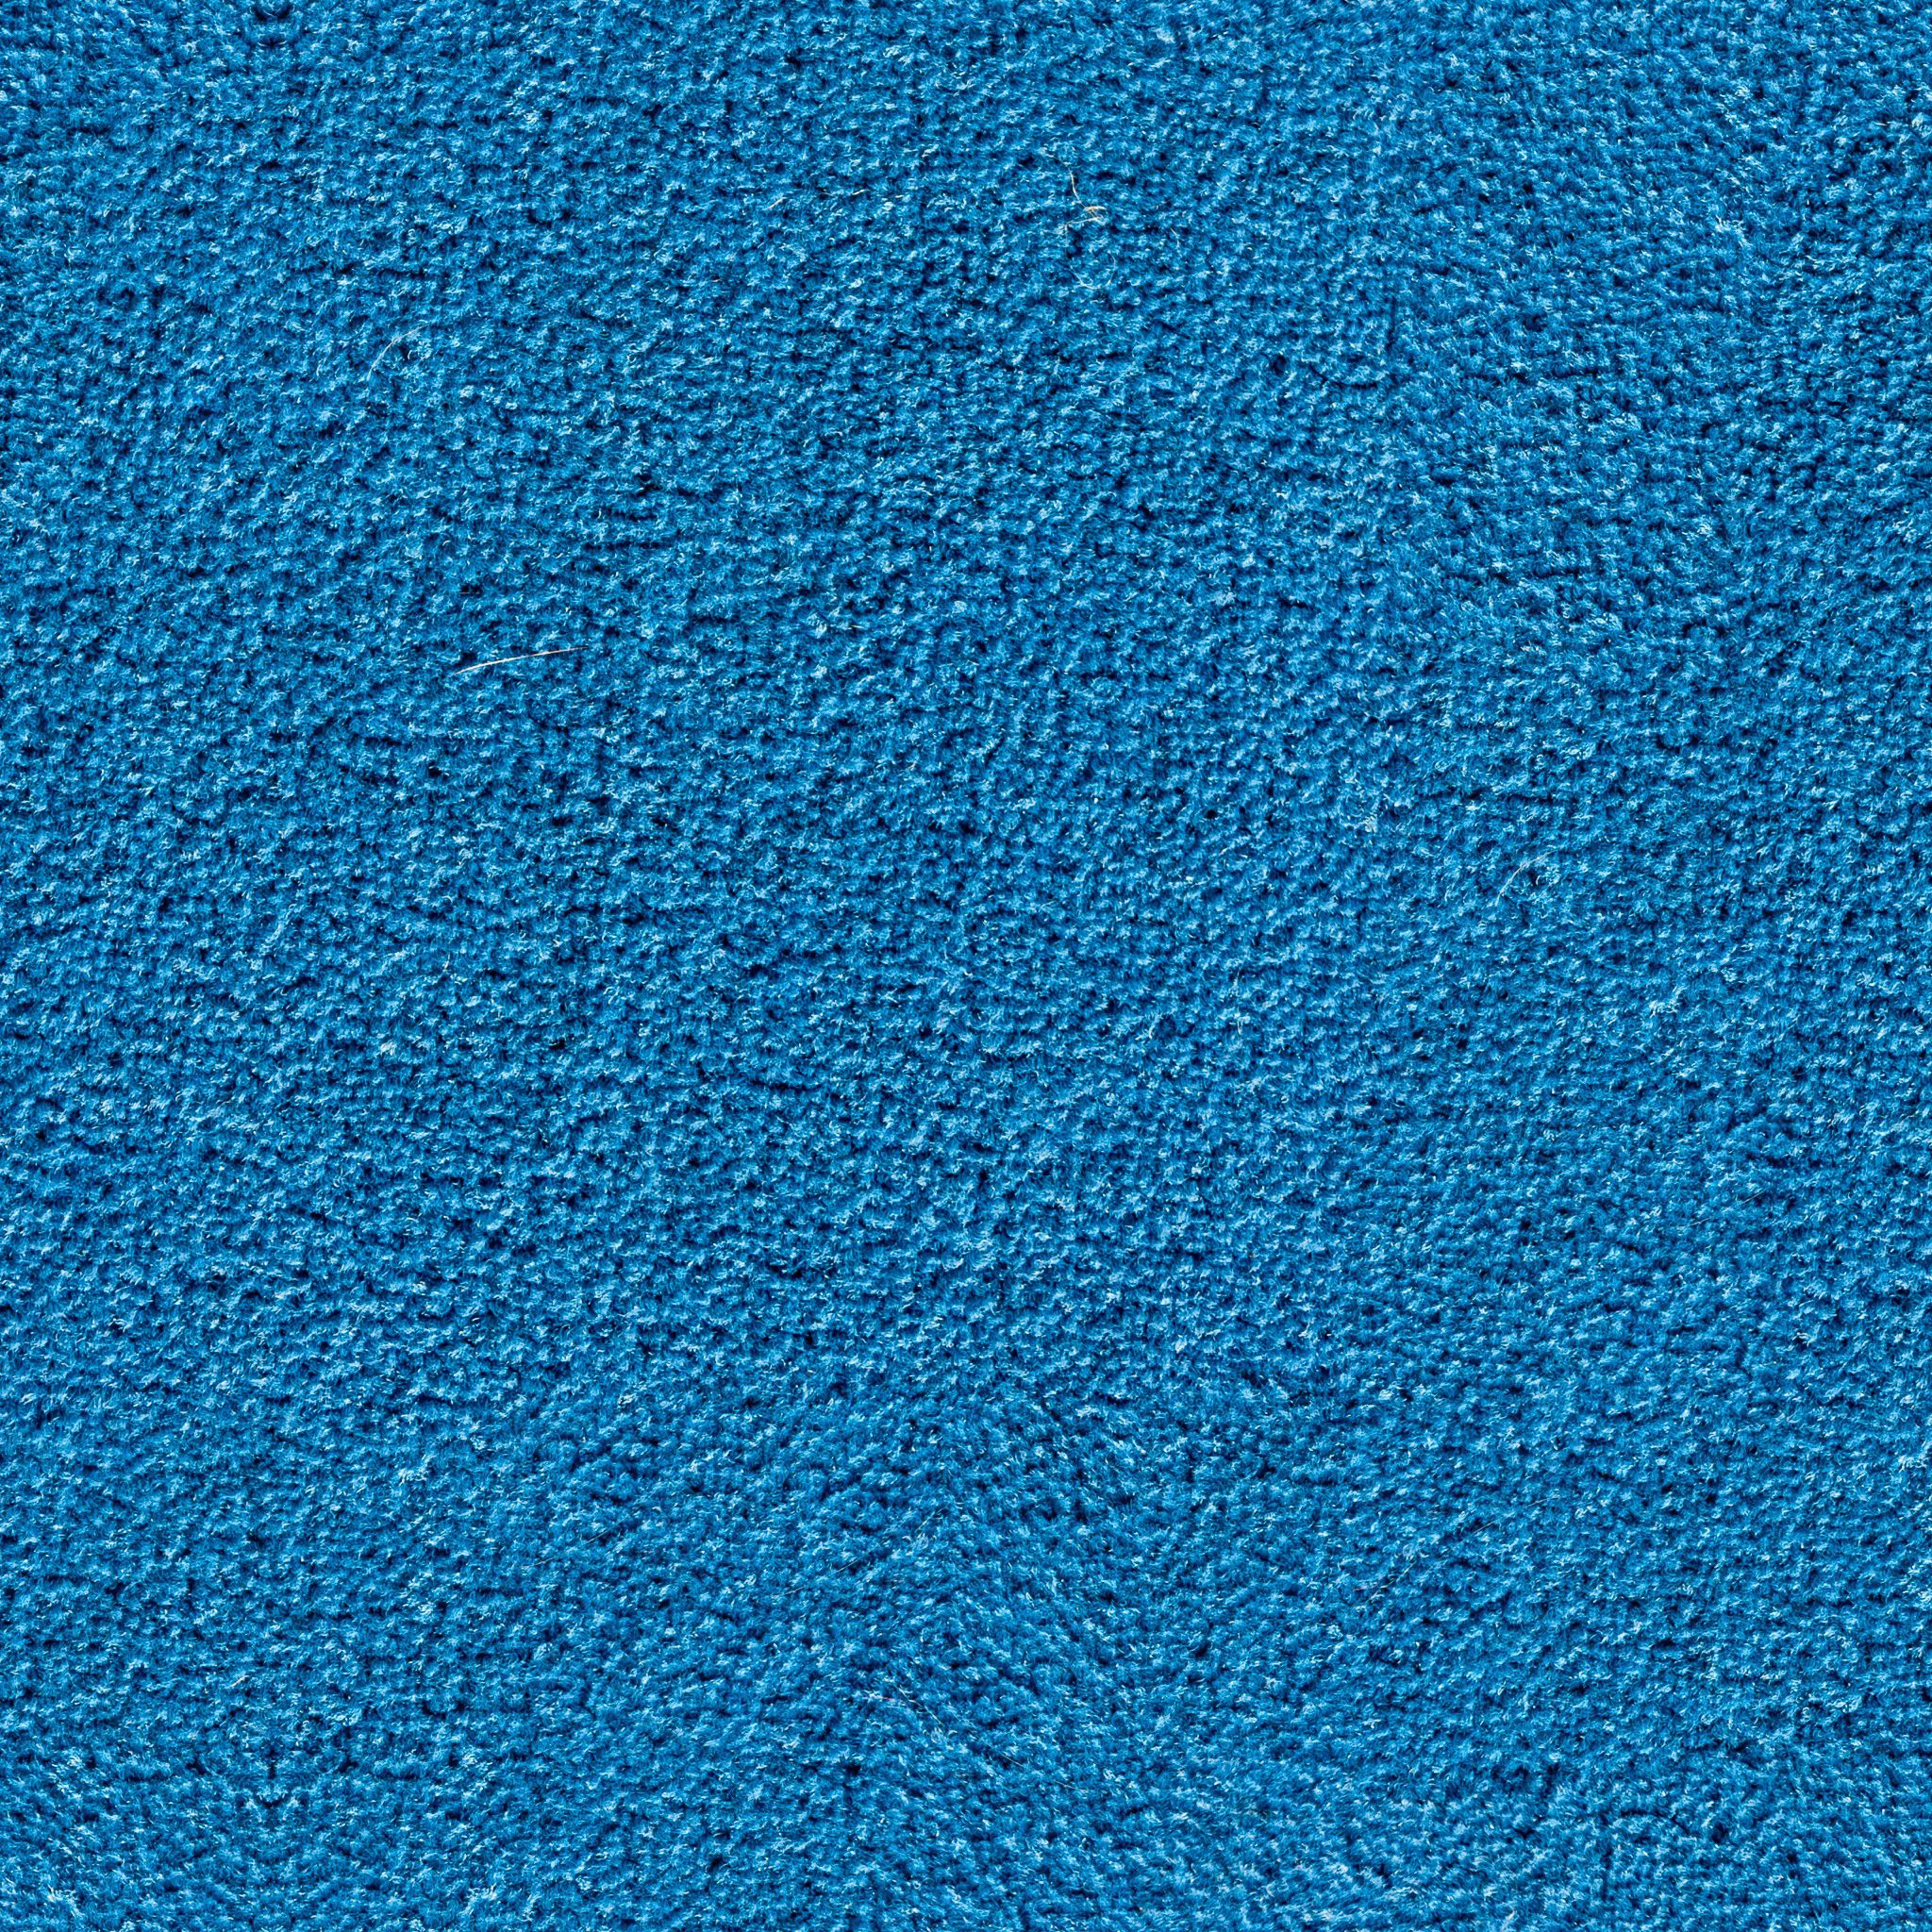 Image Result For Blue Carpet Texture Textured Carpet